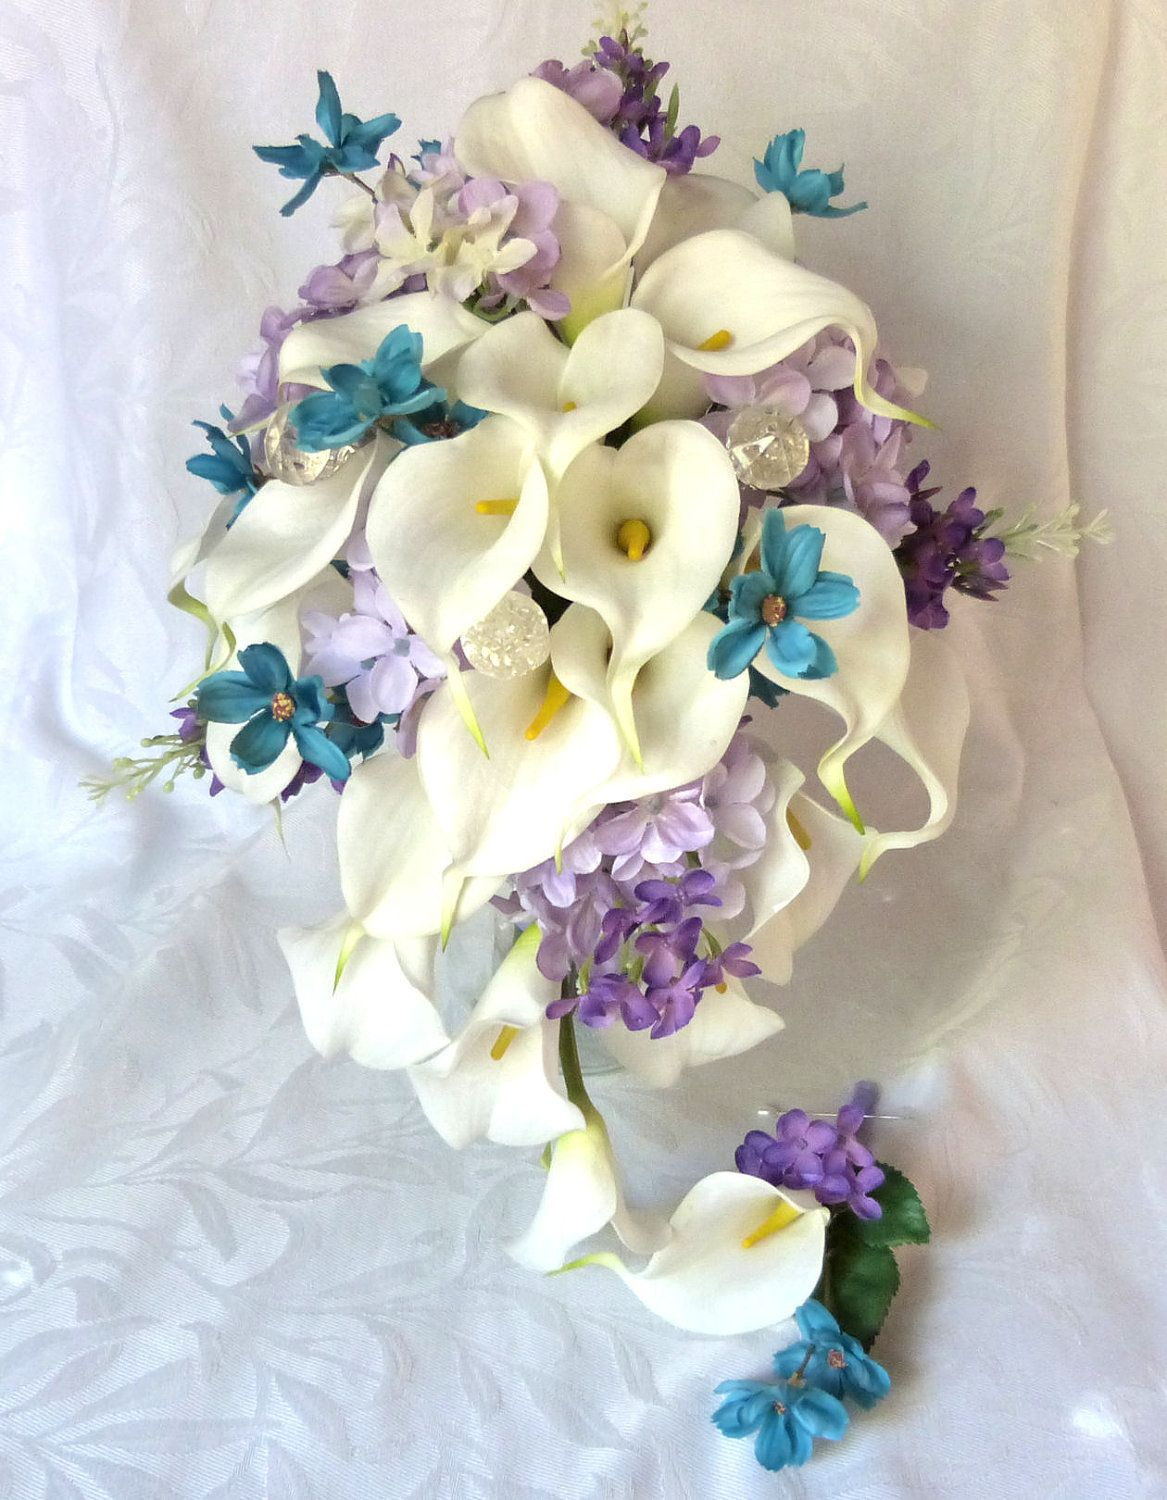 Calla lily wedding bouquet calla lily turquoise and lilac bridal calla lily wedding bouquet calla lily tiffany blue and lilac bridal bouquet calla lily bridal bouquet 9000 via etsy izmirmasajfo